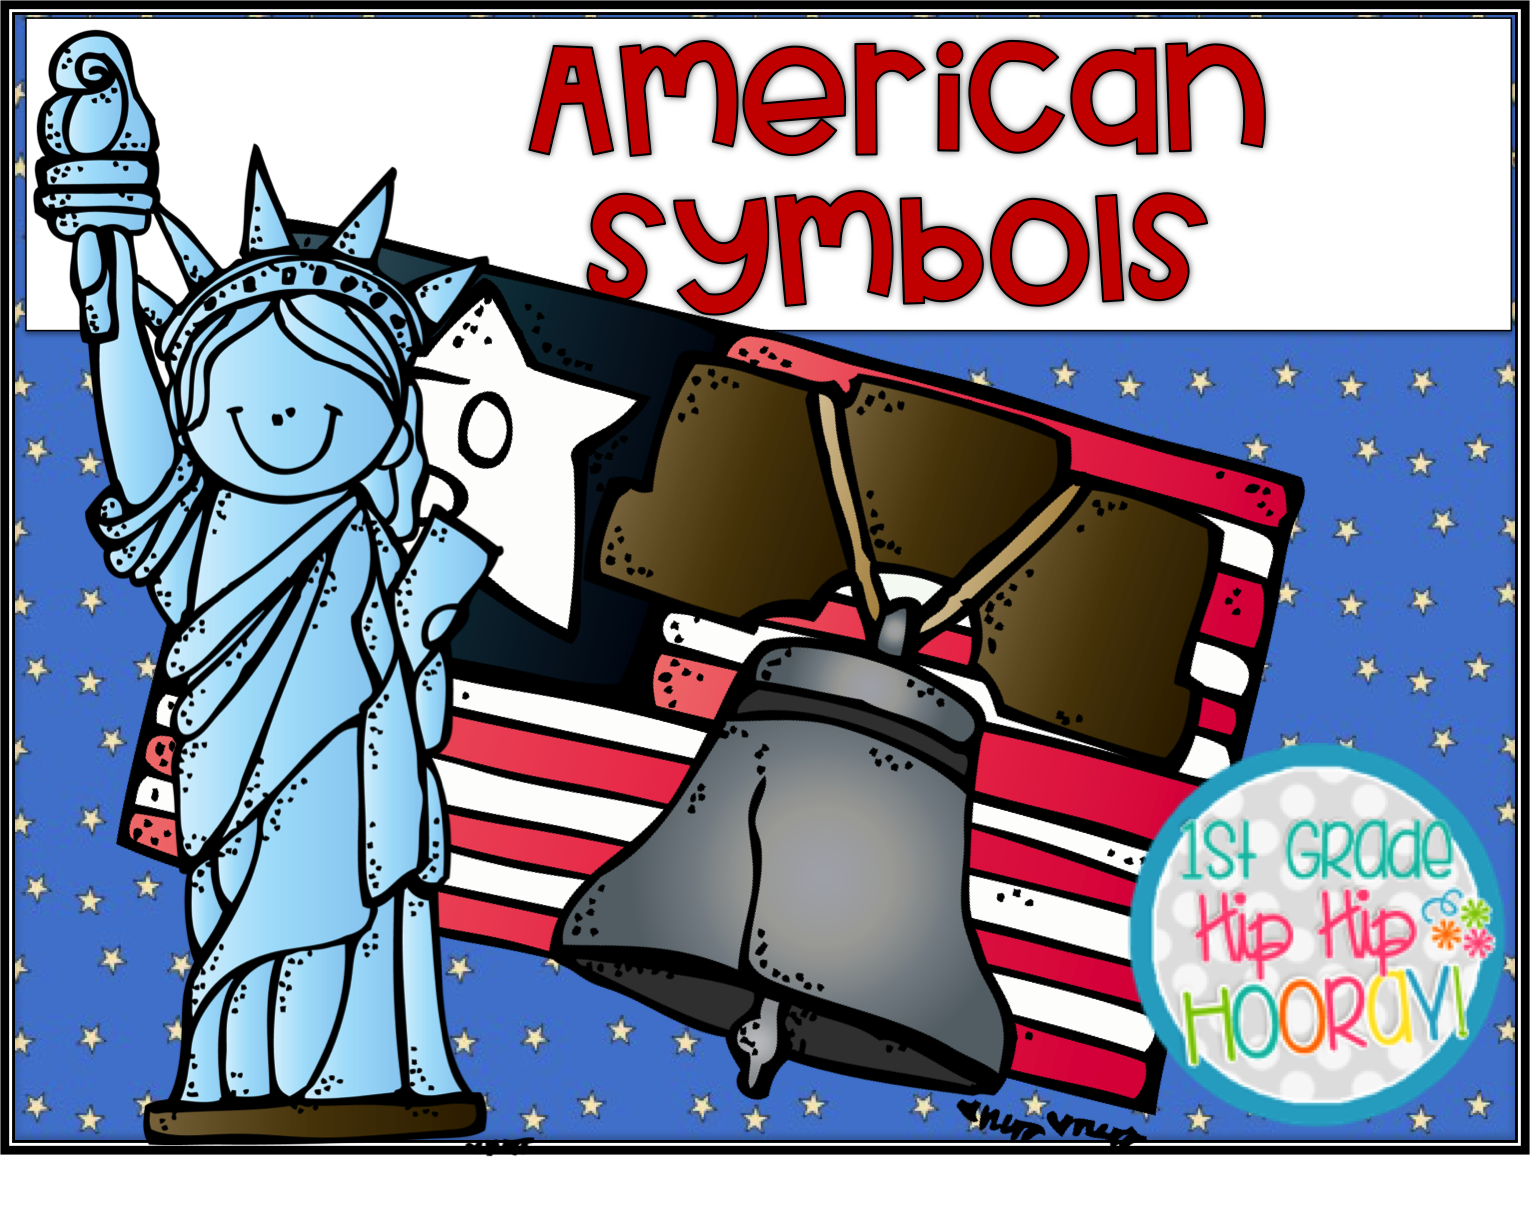 medium resolution of 1st Grade Statue Of Liberty Worksheets   Printable Worksheets and  Activities for Teachers